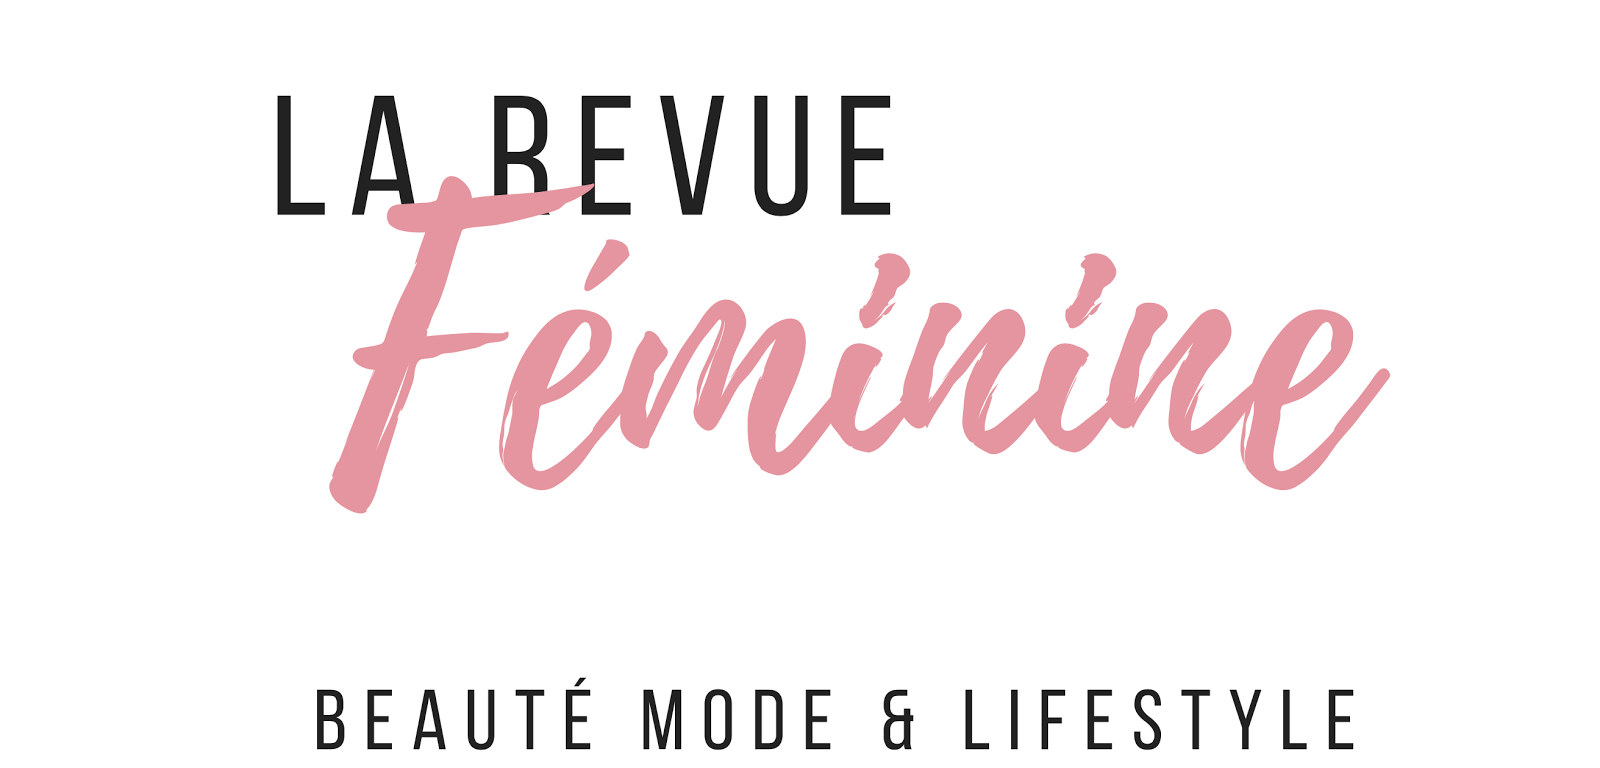 La revue Féminine